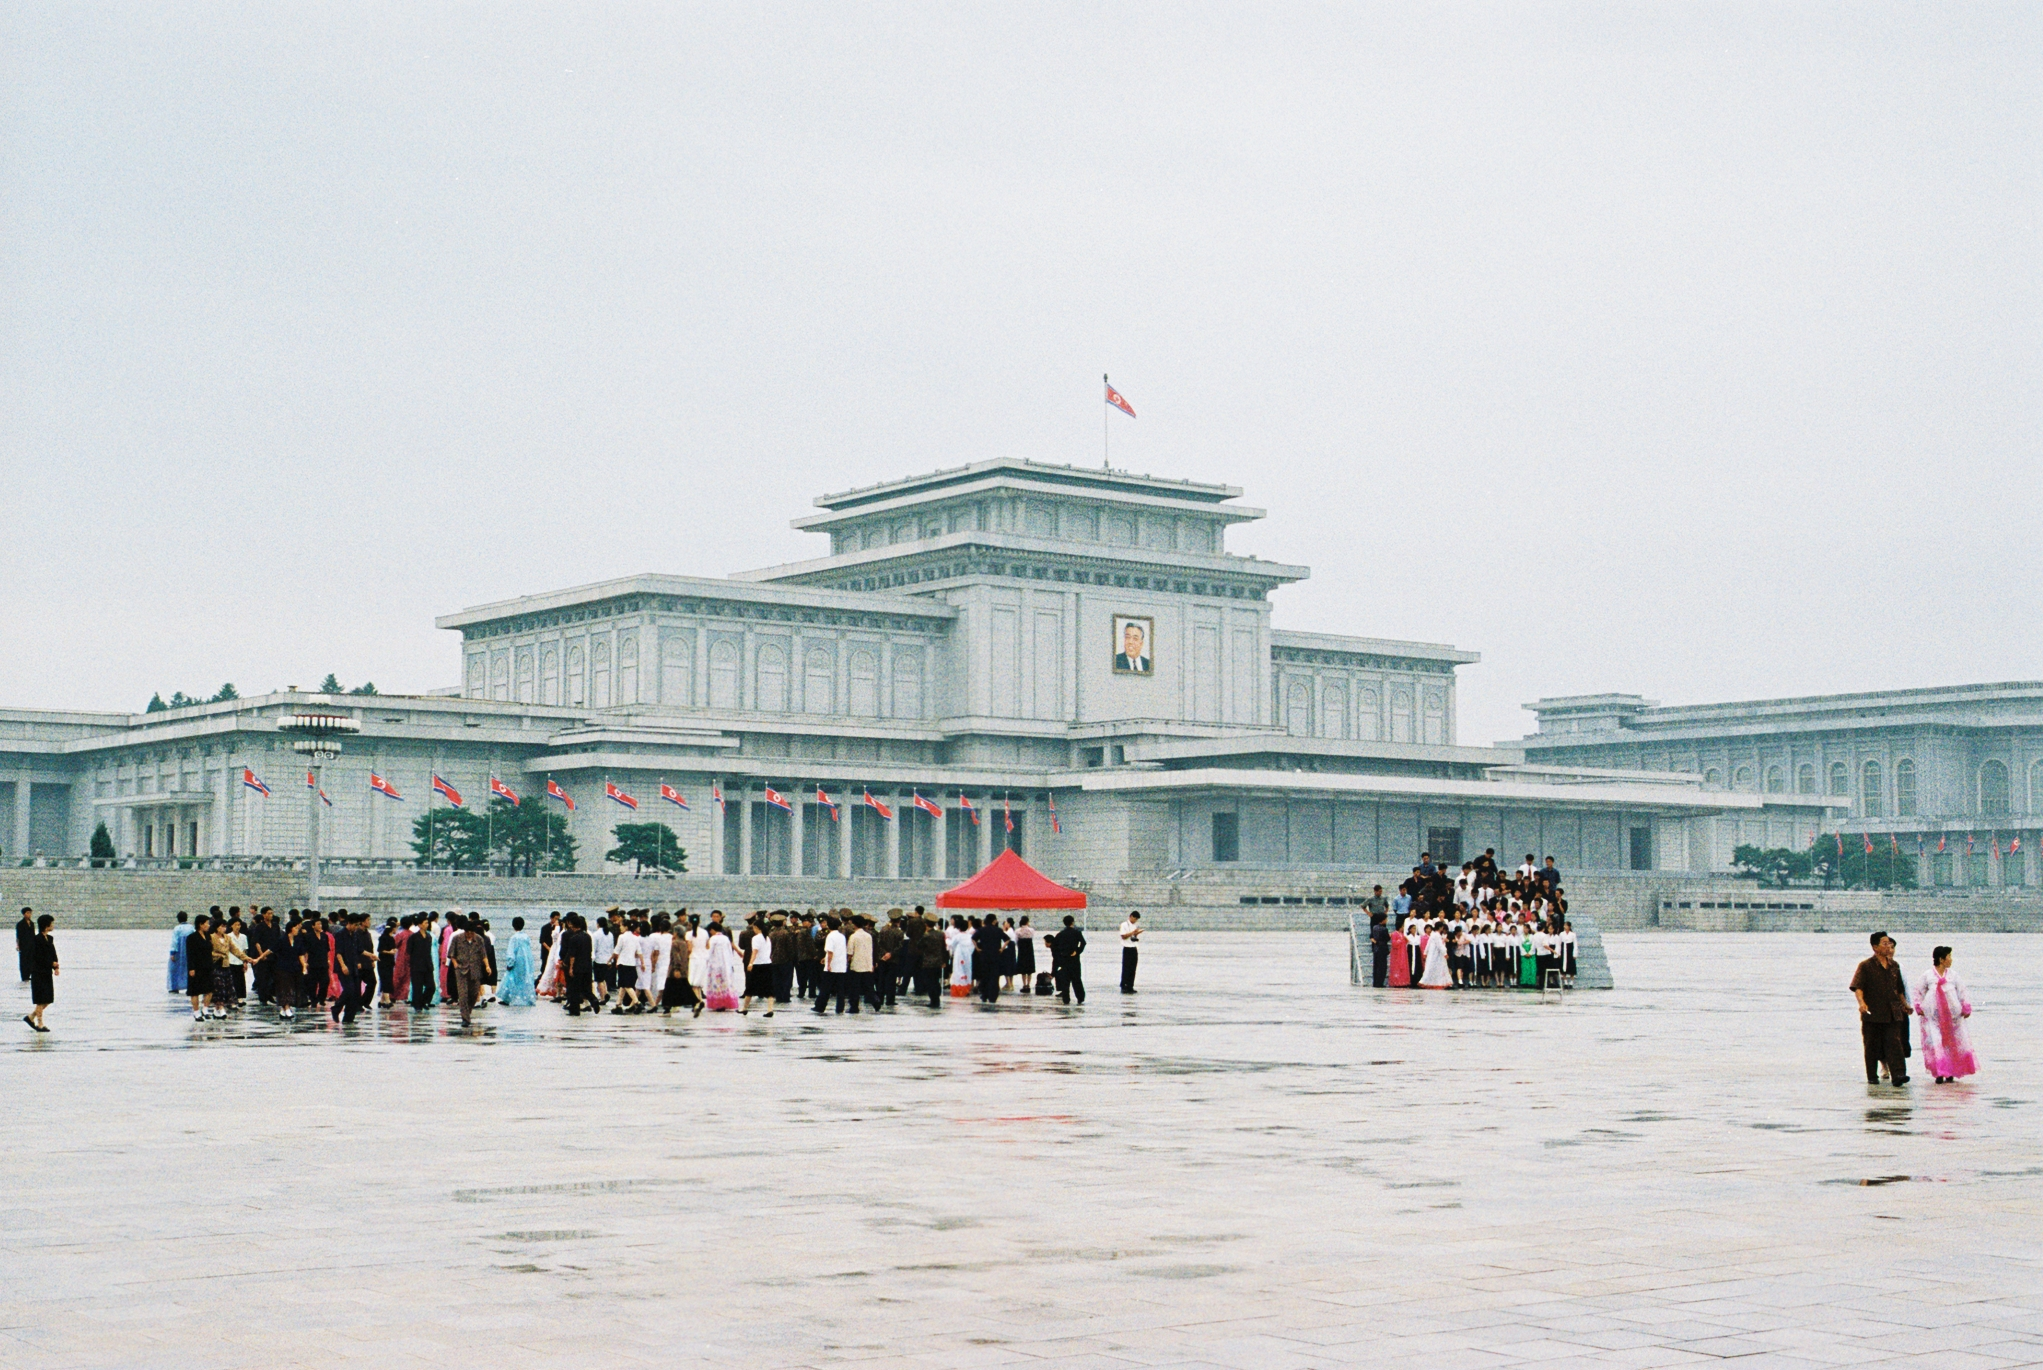 The Kumsusan Sun Memorial Palace